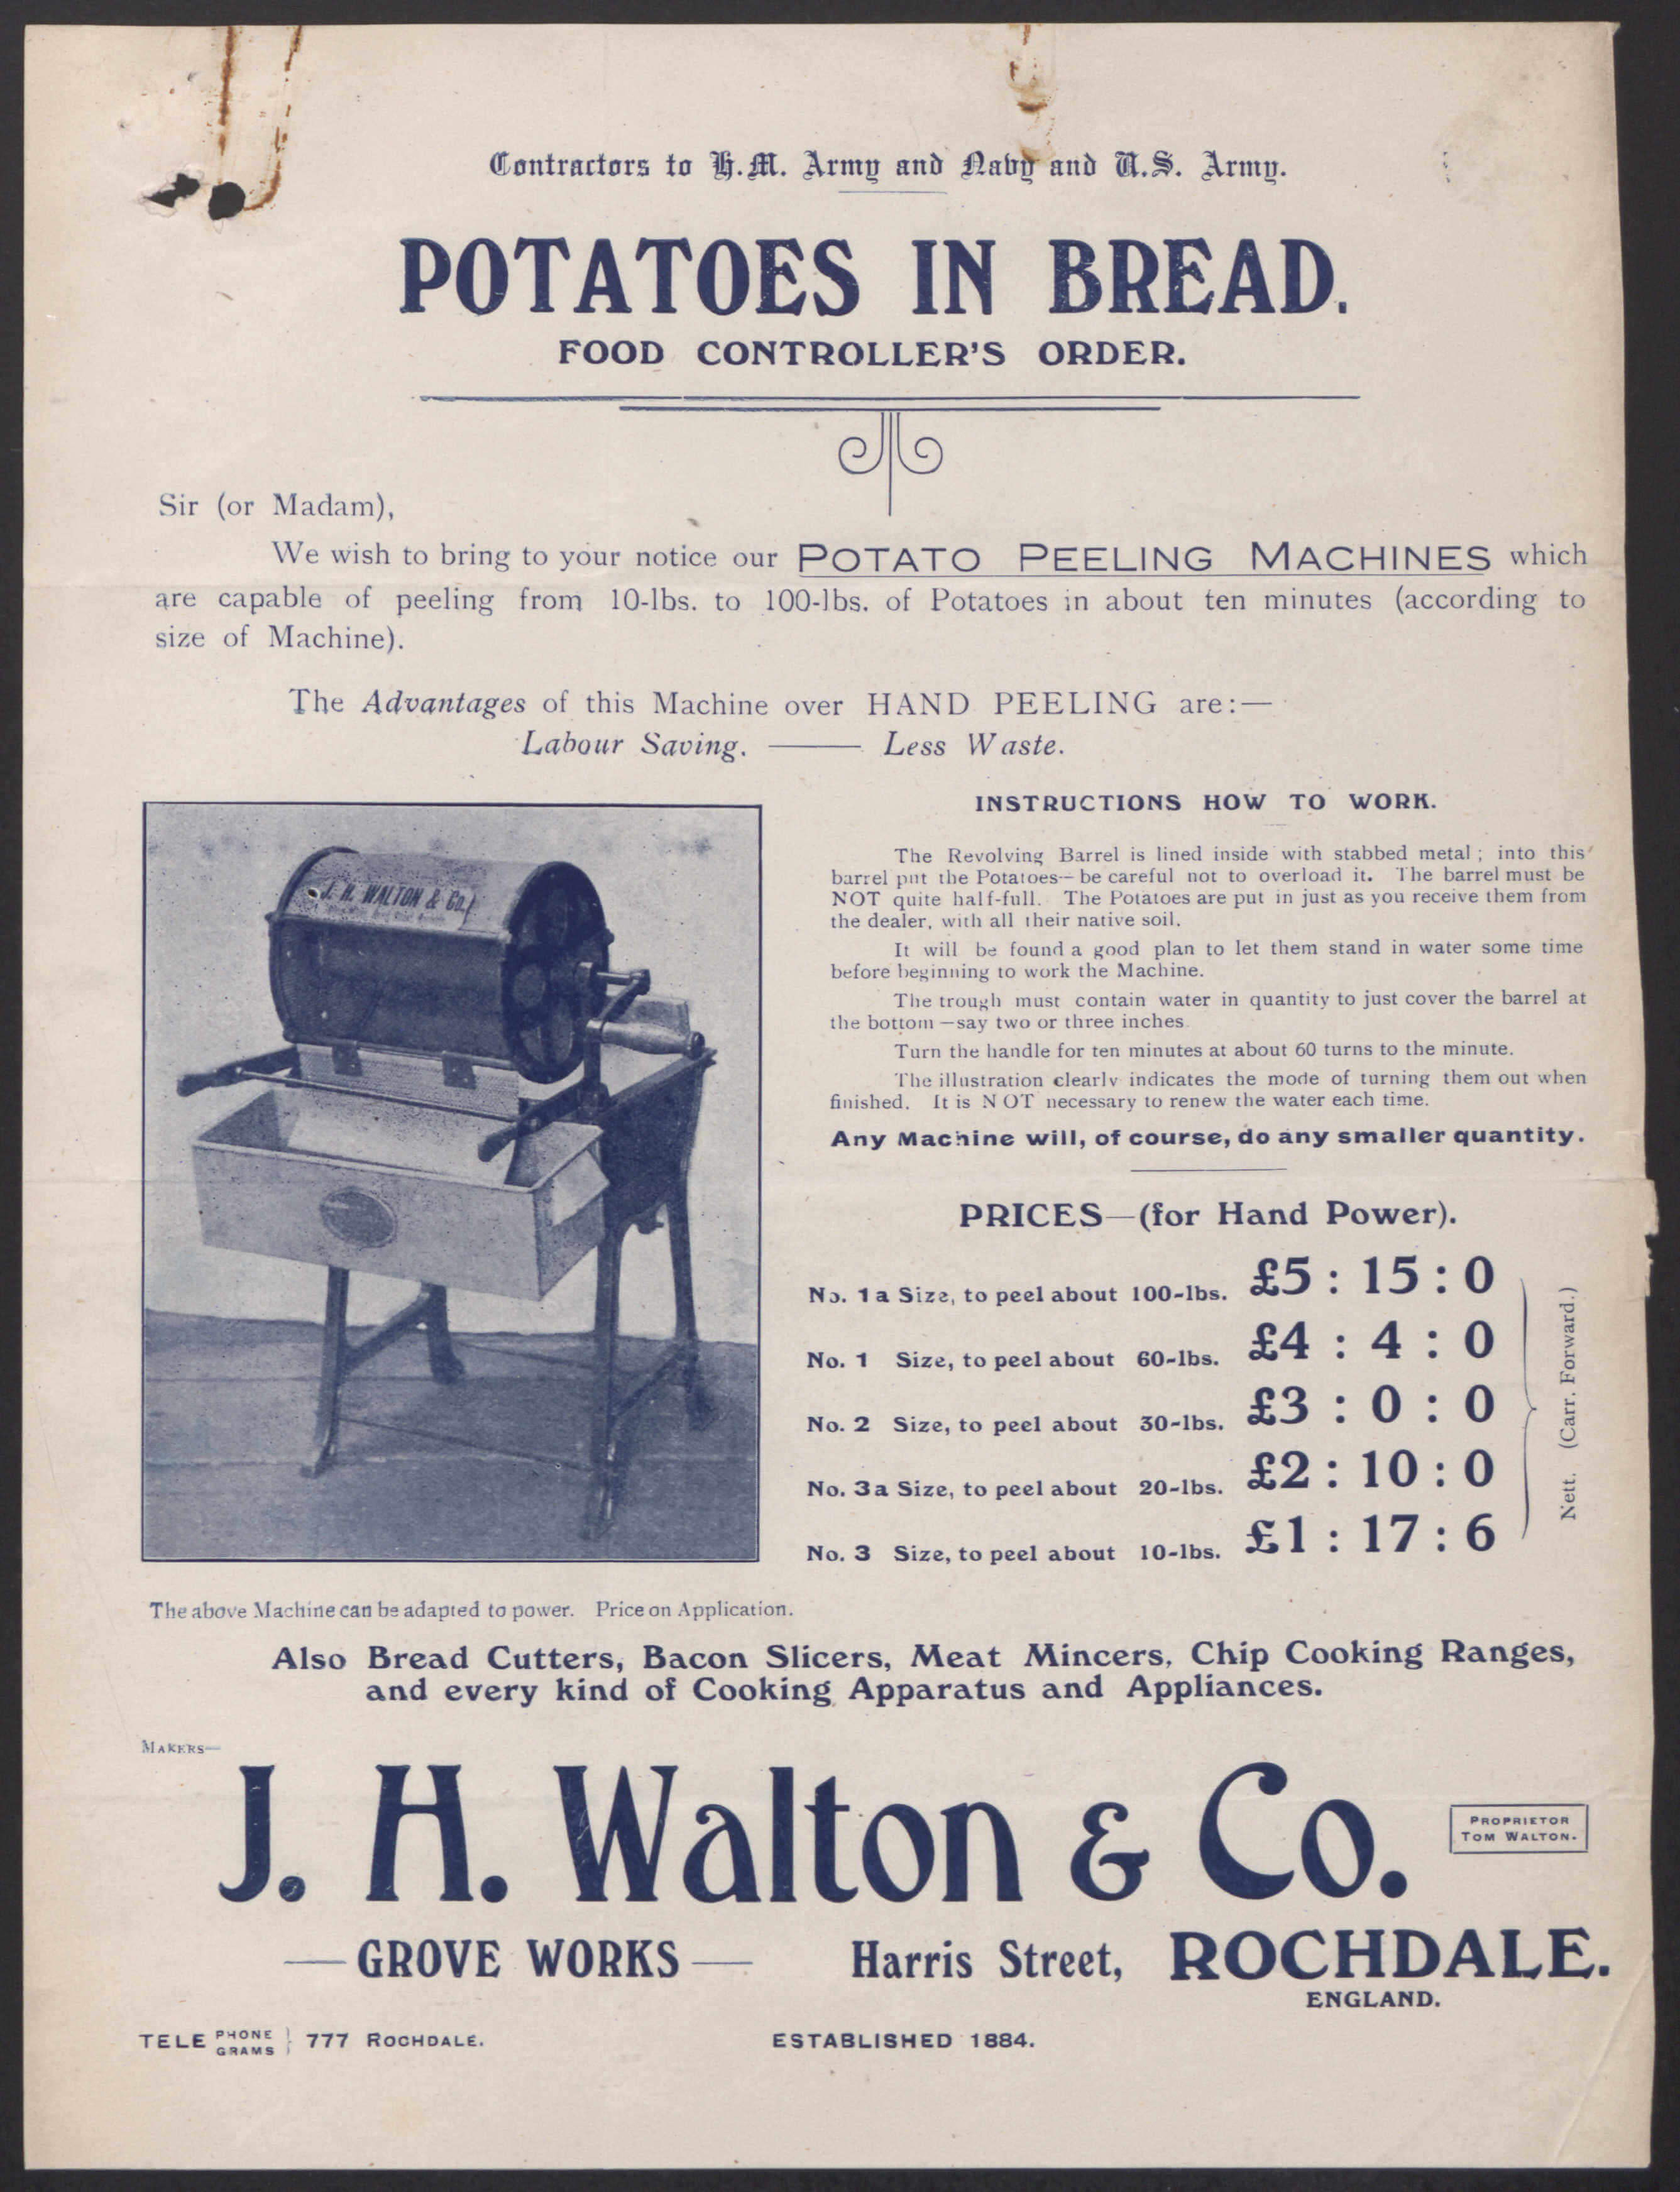 J.H. Walton & Co. Potato Peeling Machine © Images including crown copyright images reproduced by courtesy of The National Archives, London, England. www.nationalarchives.gov.uk